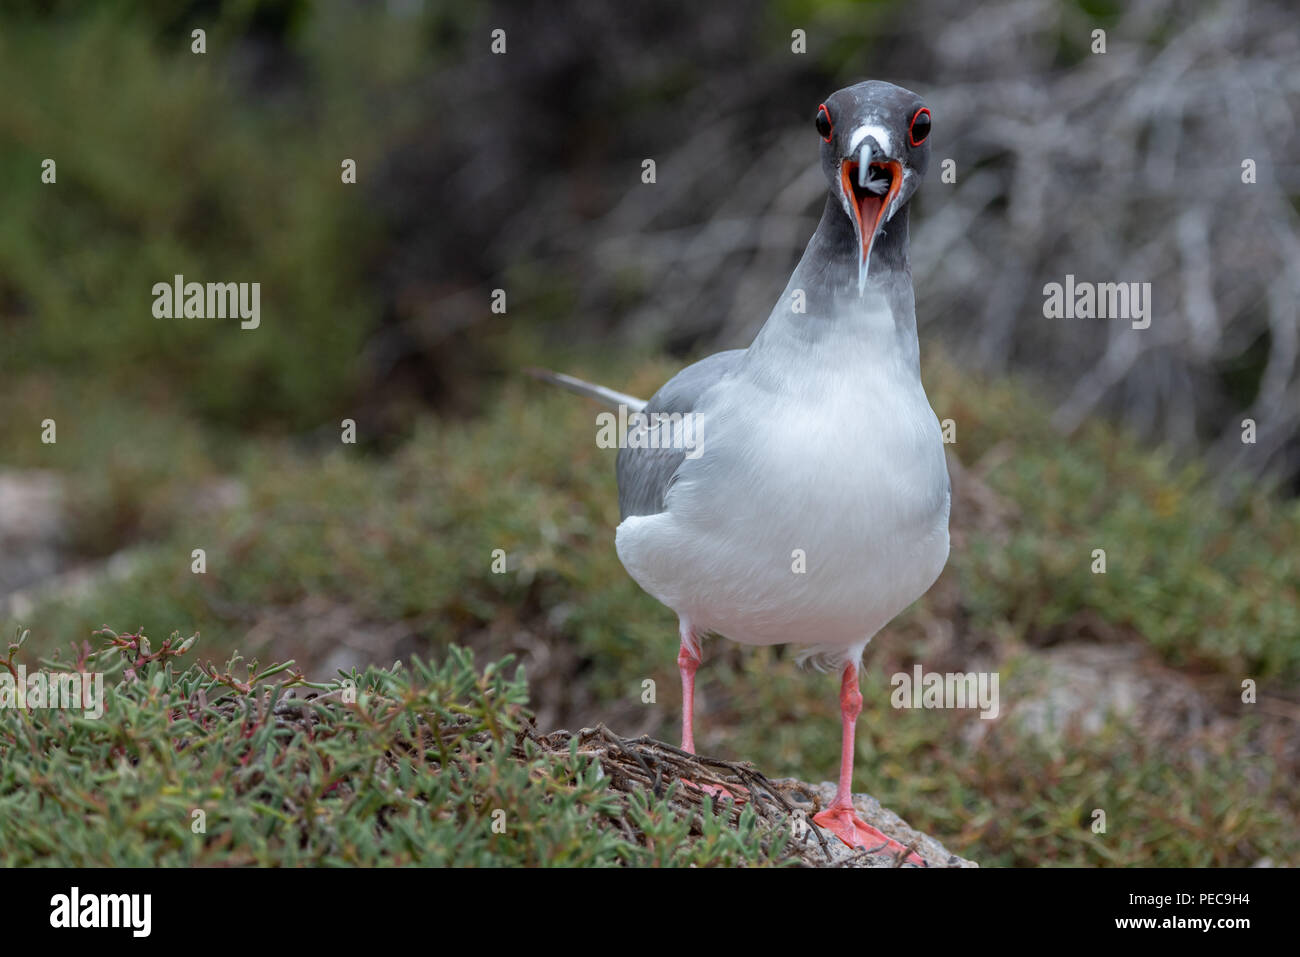 Swallow-tailed Gull, Galápagos - Stock Image